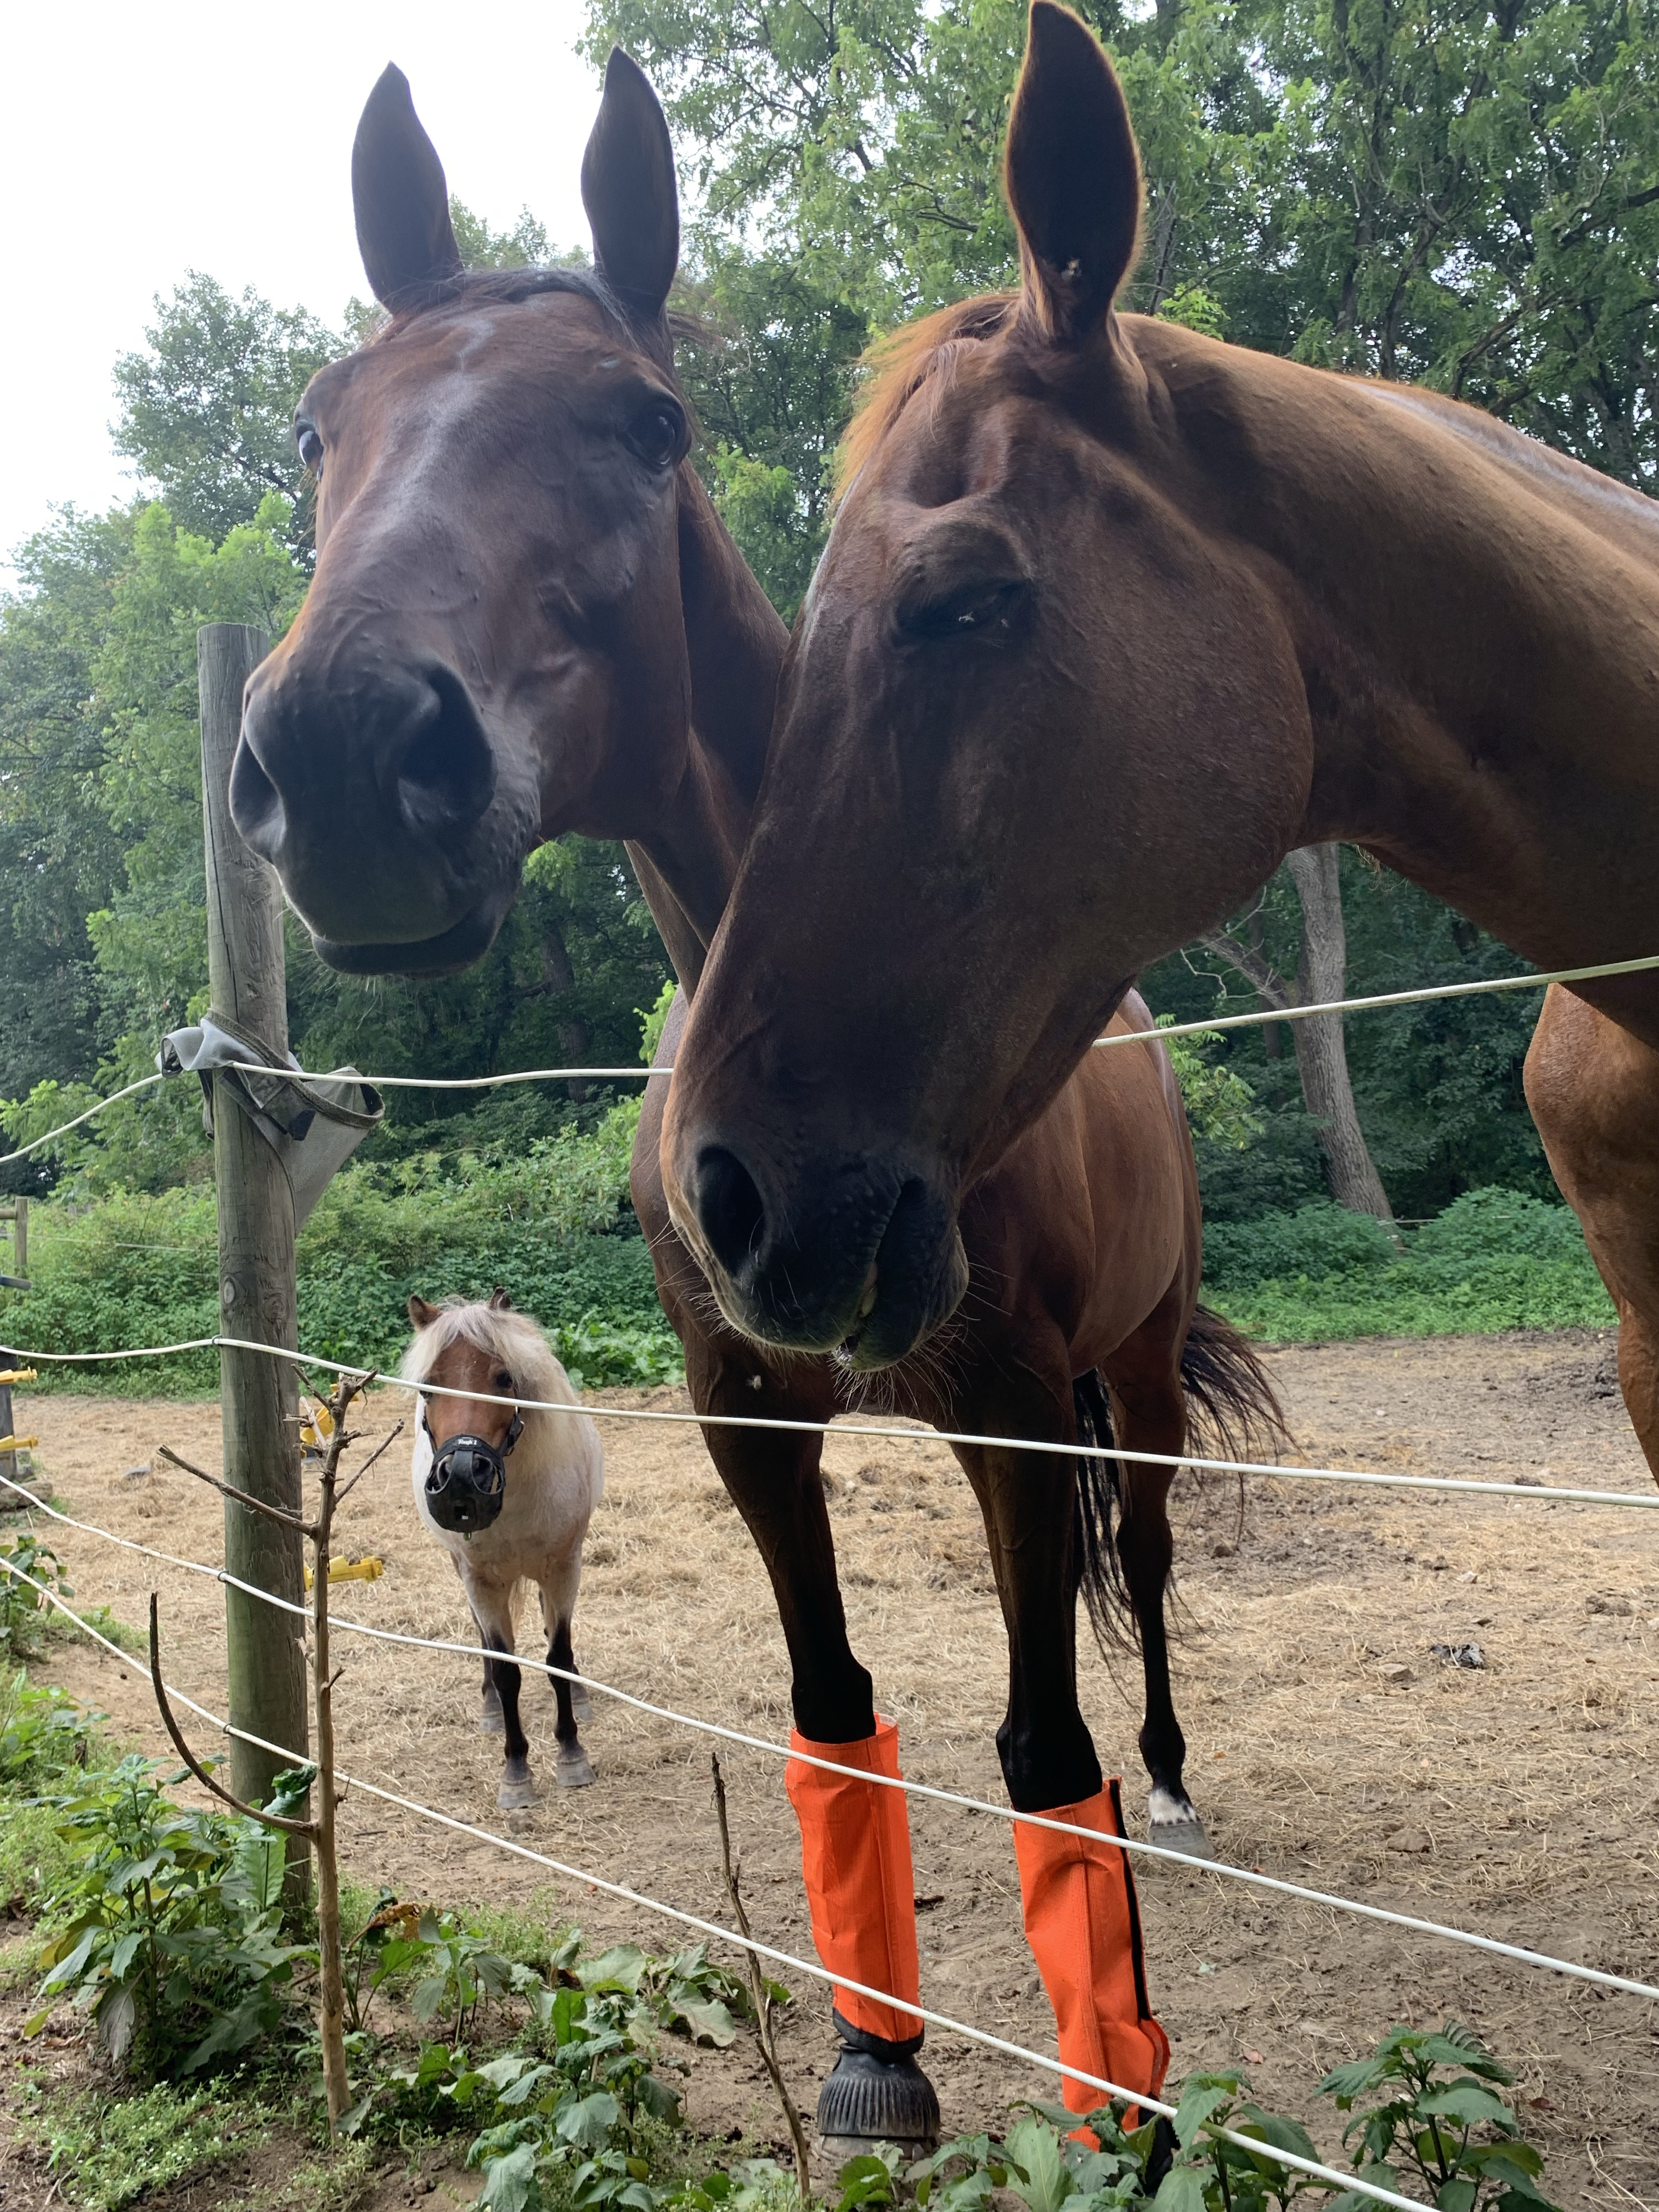 Jiminy, Nay Nay, and Subi by fence in paddock